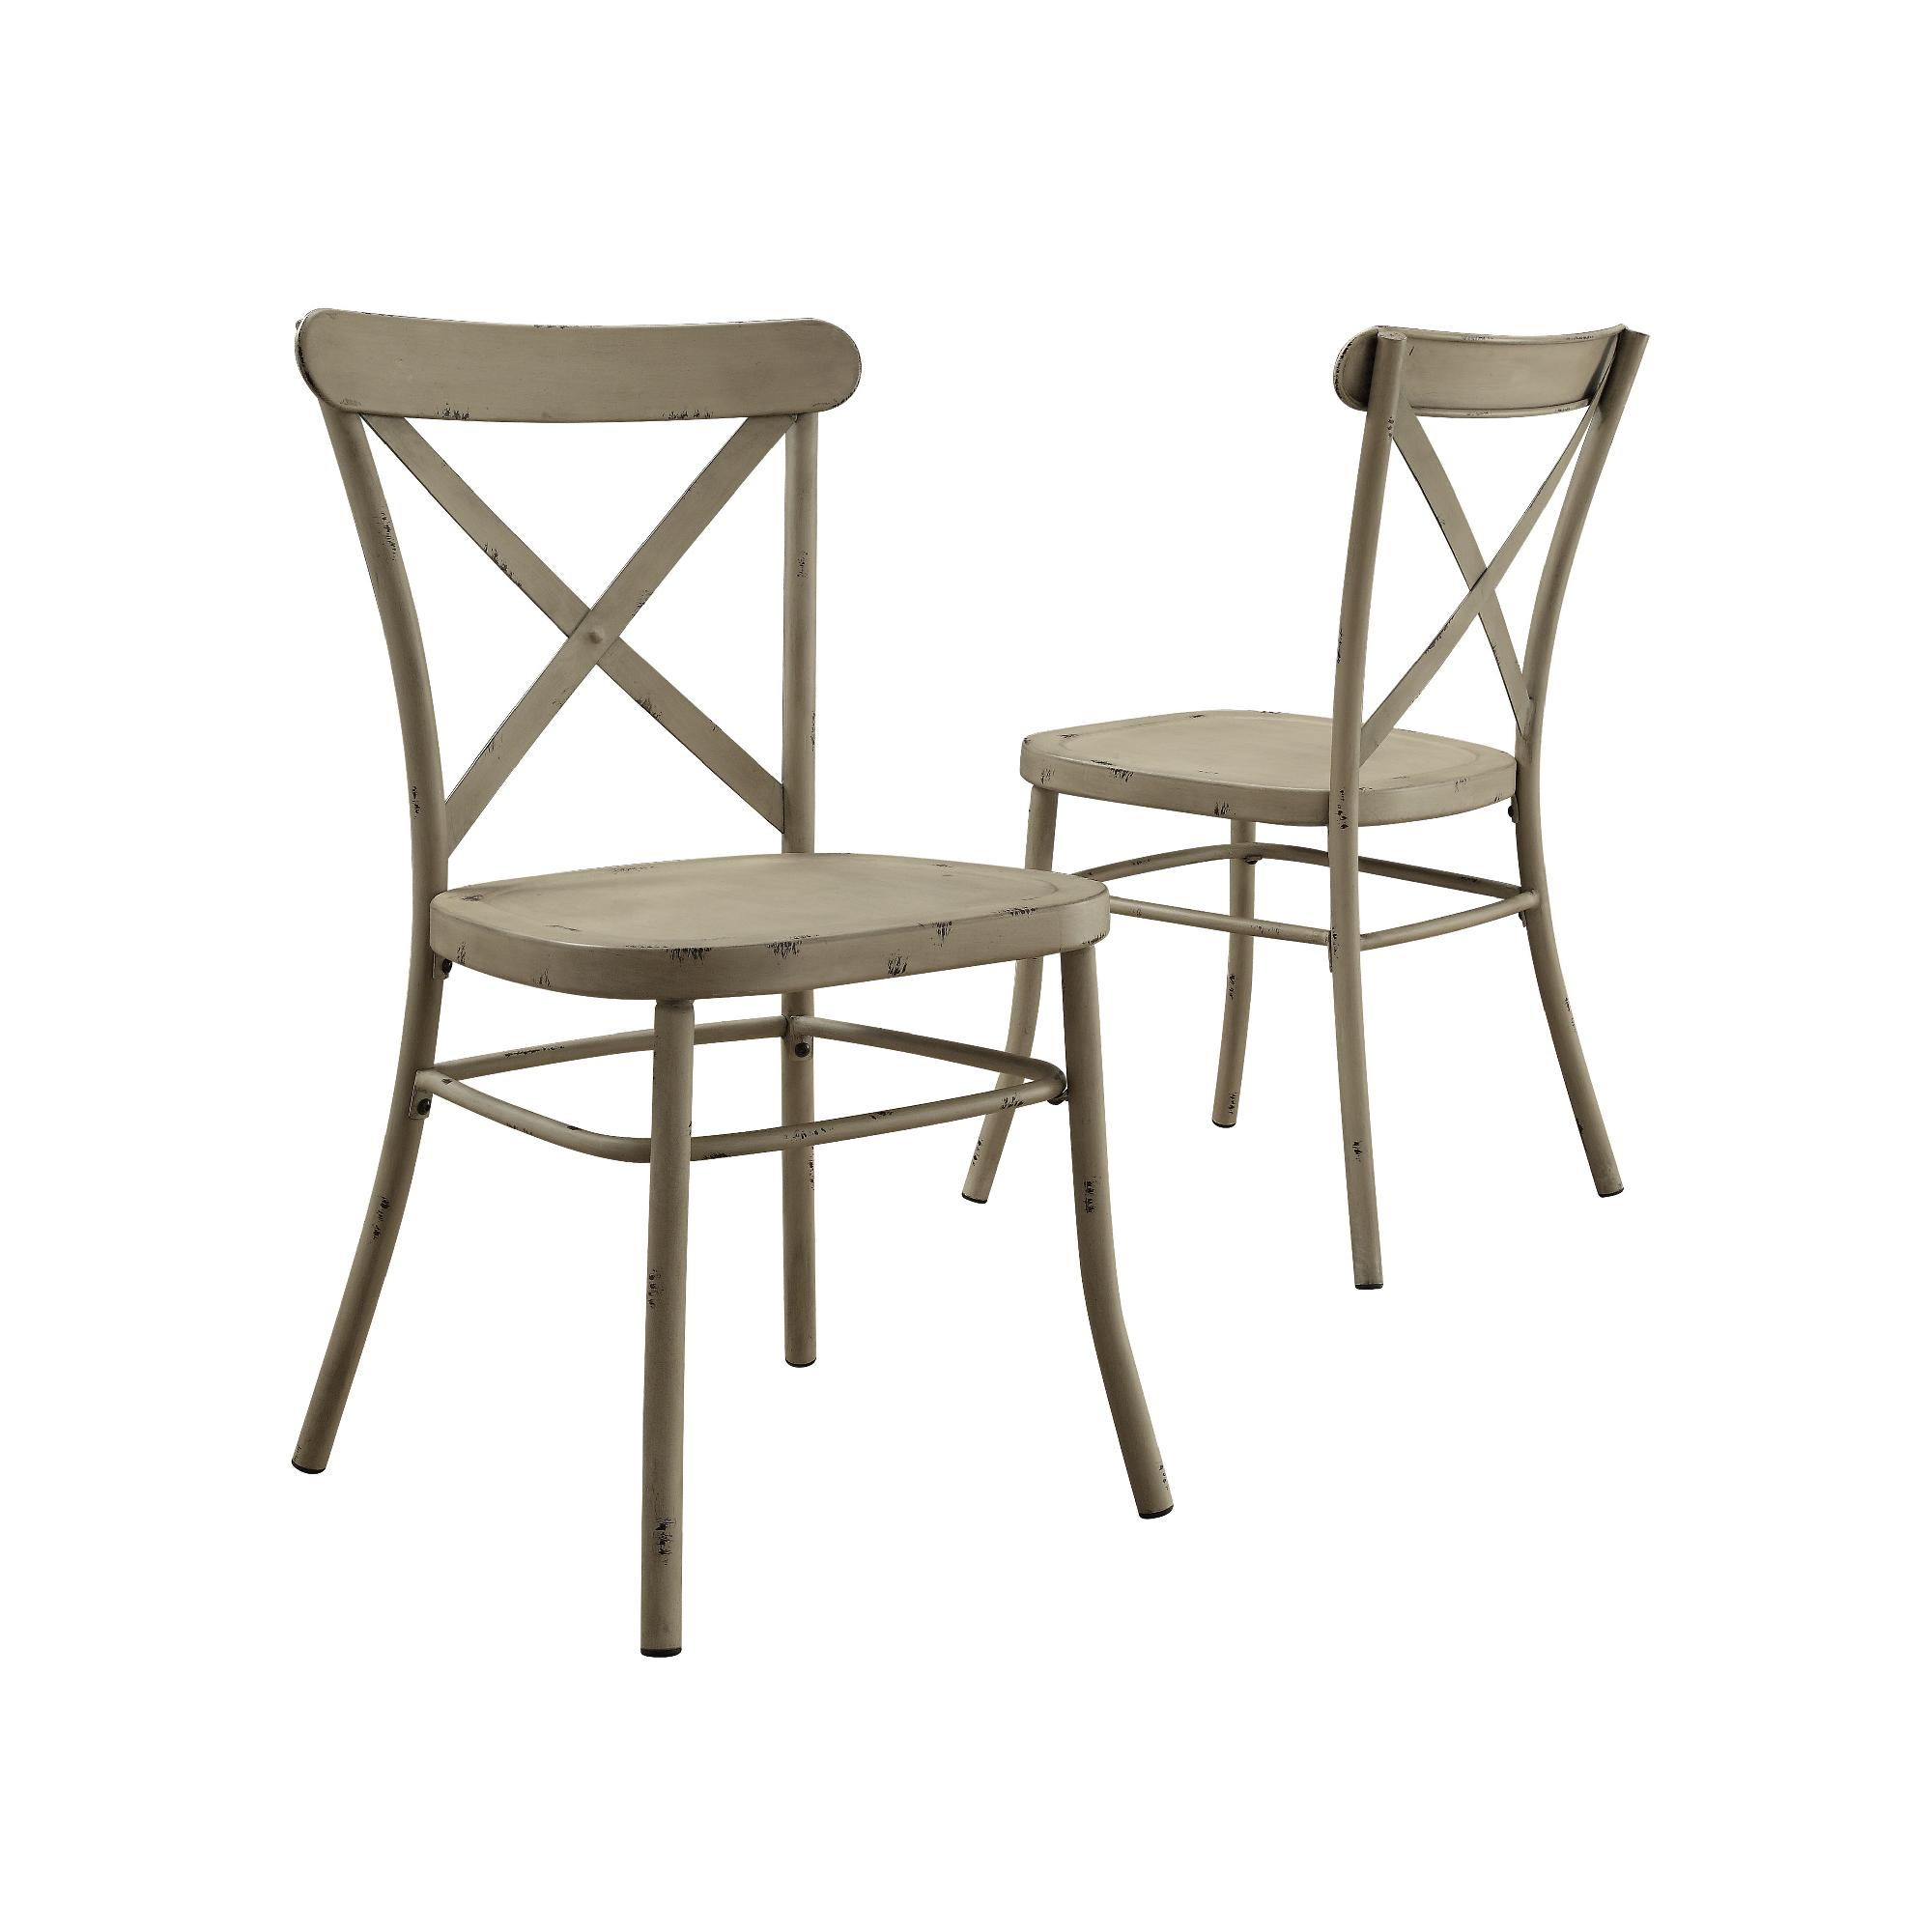 Attrayant Better Homes And Gardens Collin Distressed White Dining Chair, Set Of 2